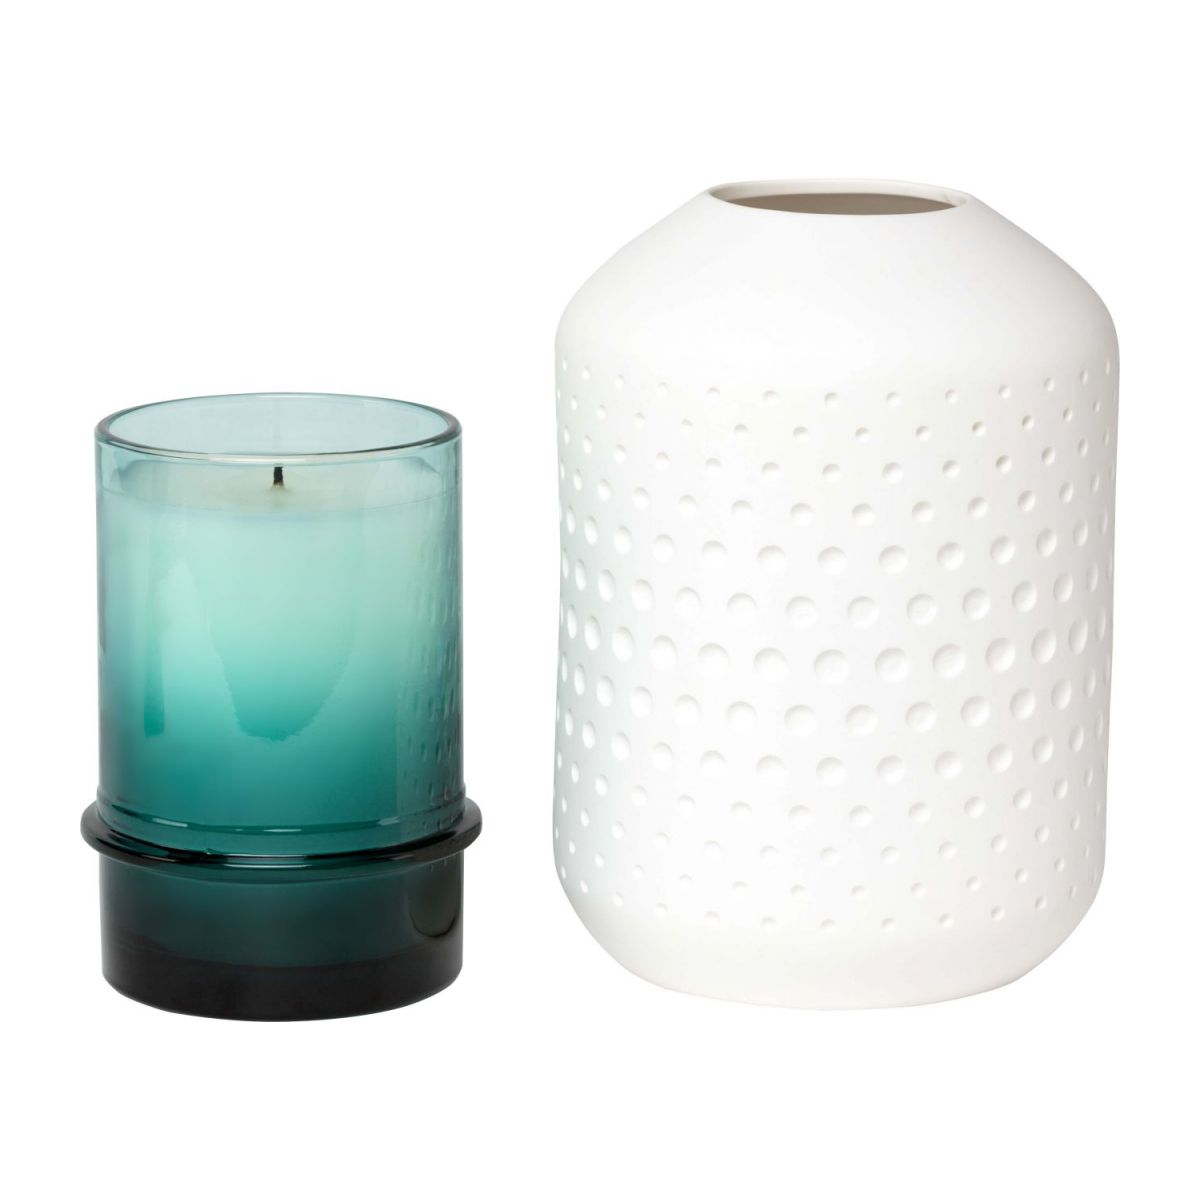 Jasmine scented candle gift set n°5